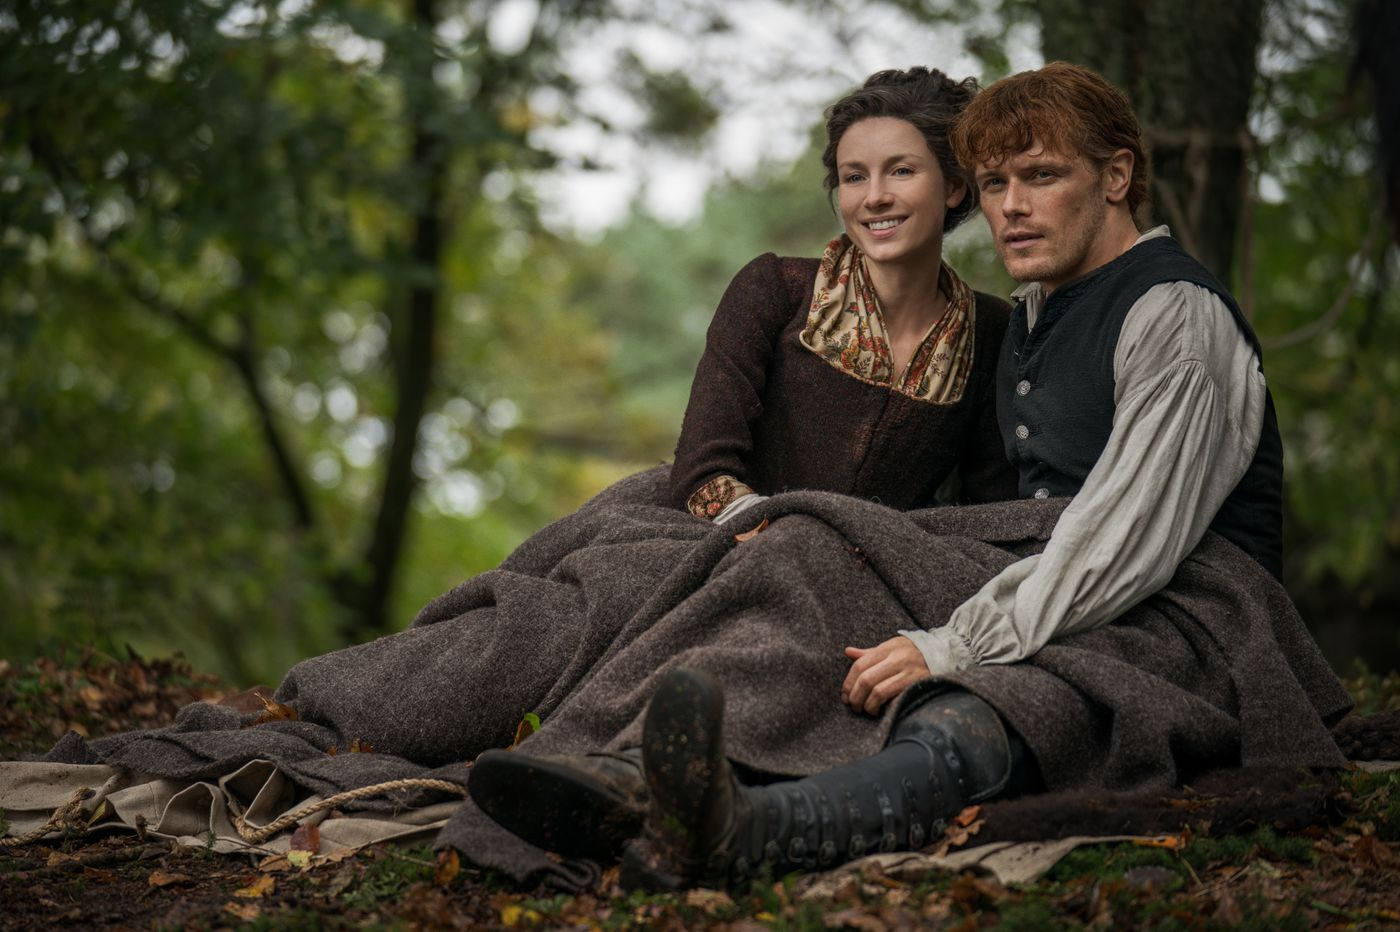 TV picks: 'Outlander,' 'Medal of Honor,' 'The Deuce' and more